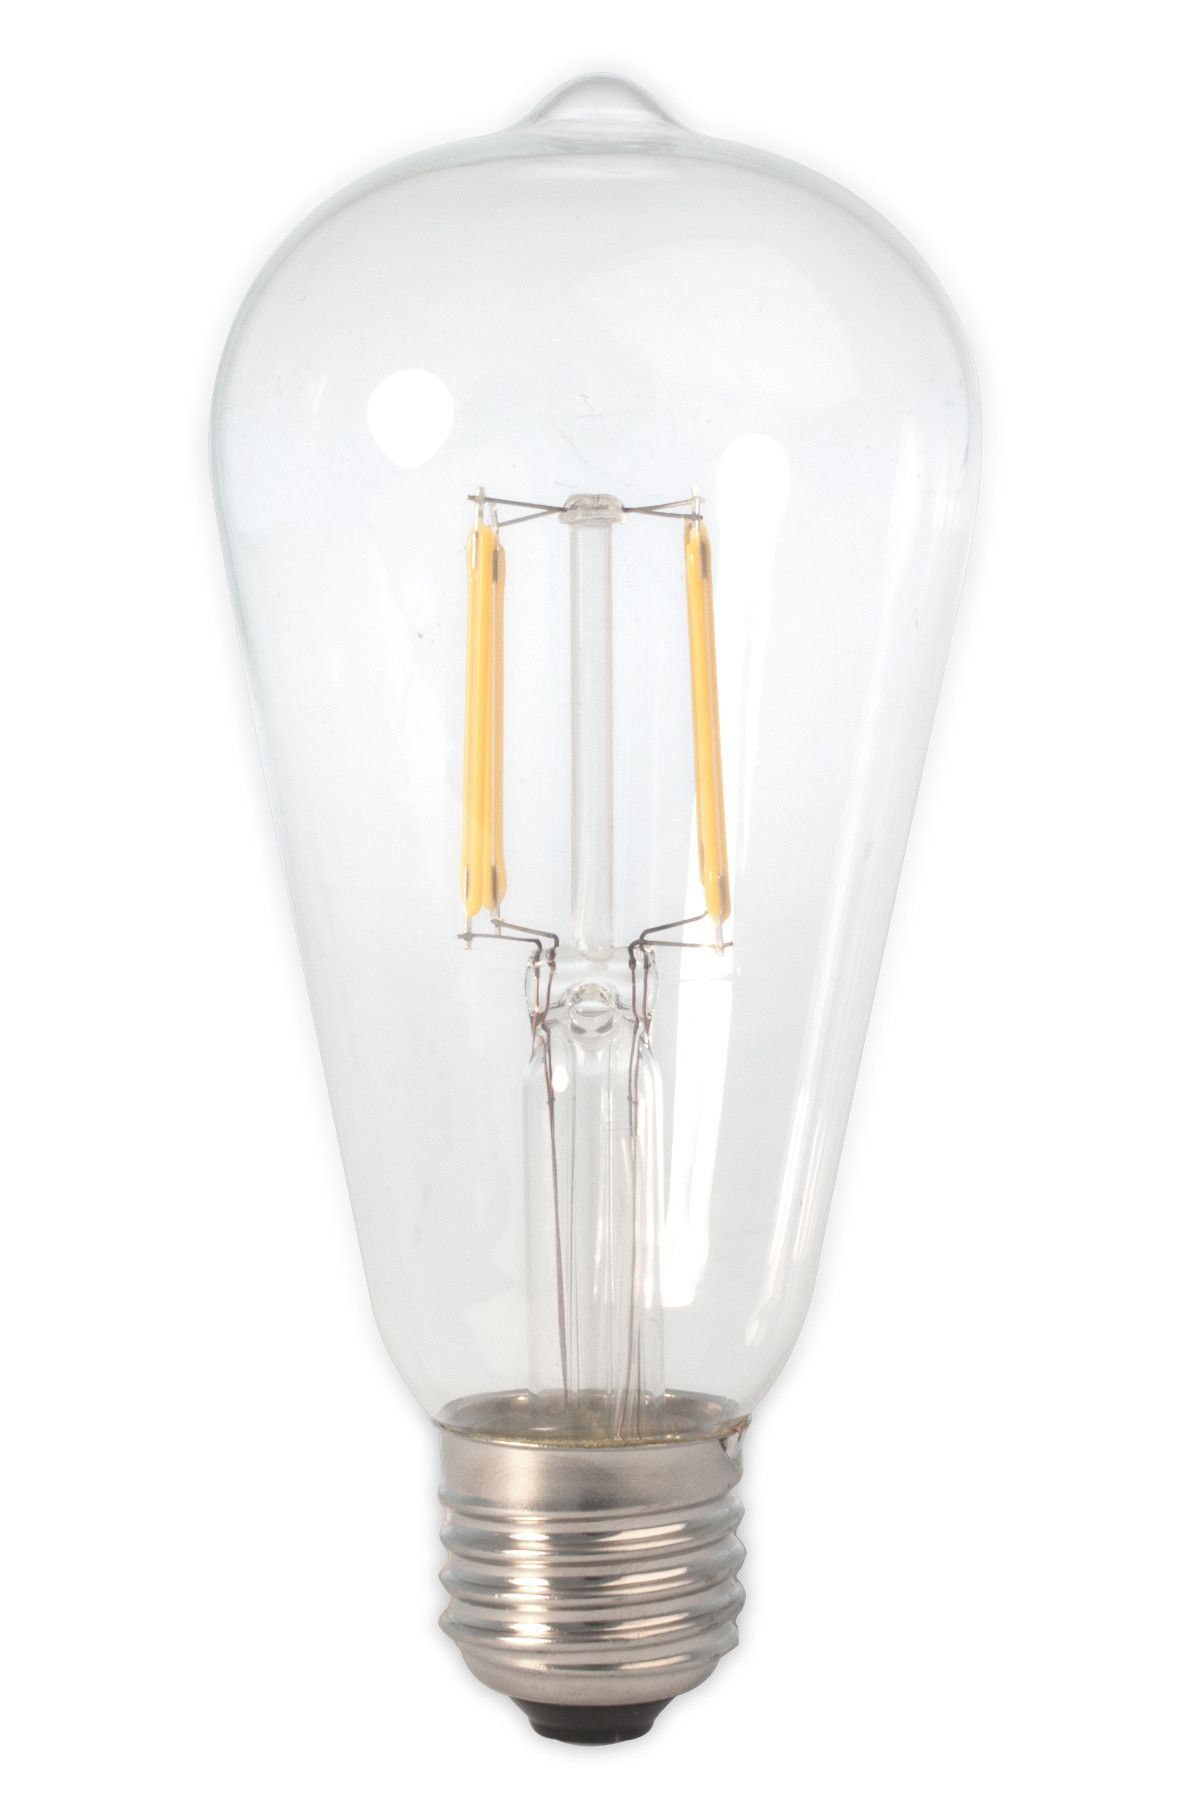 Dc 12v 24v 36v 6w Led St64 Classic Retro Wire Filament Light Bulb Industrial Loft Light Bulb Filament Bulb Lighting Battery Lights